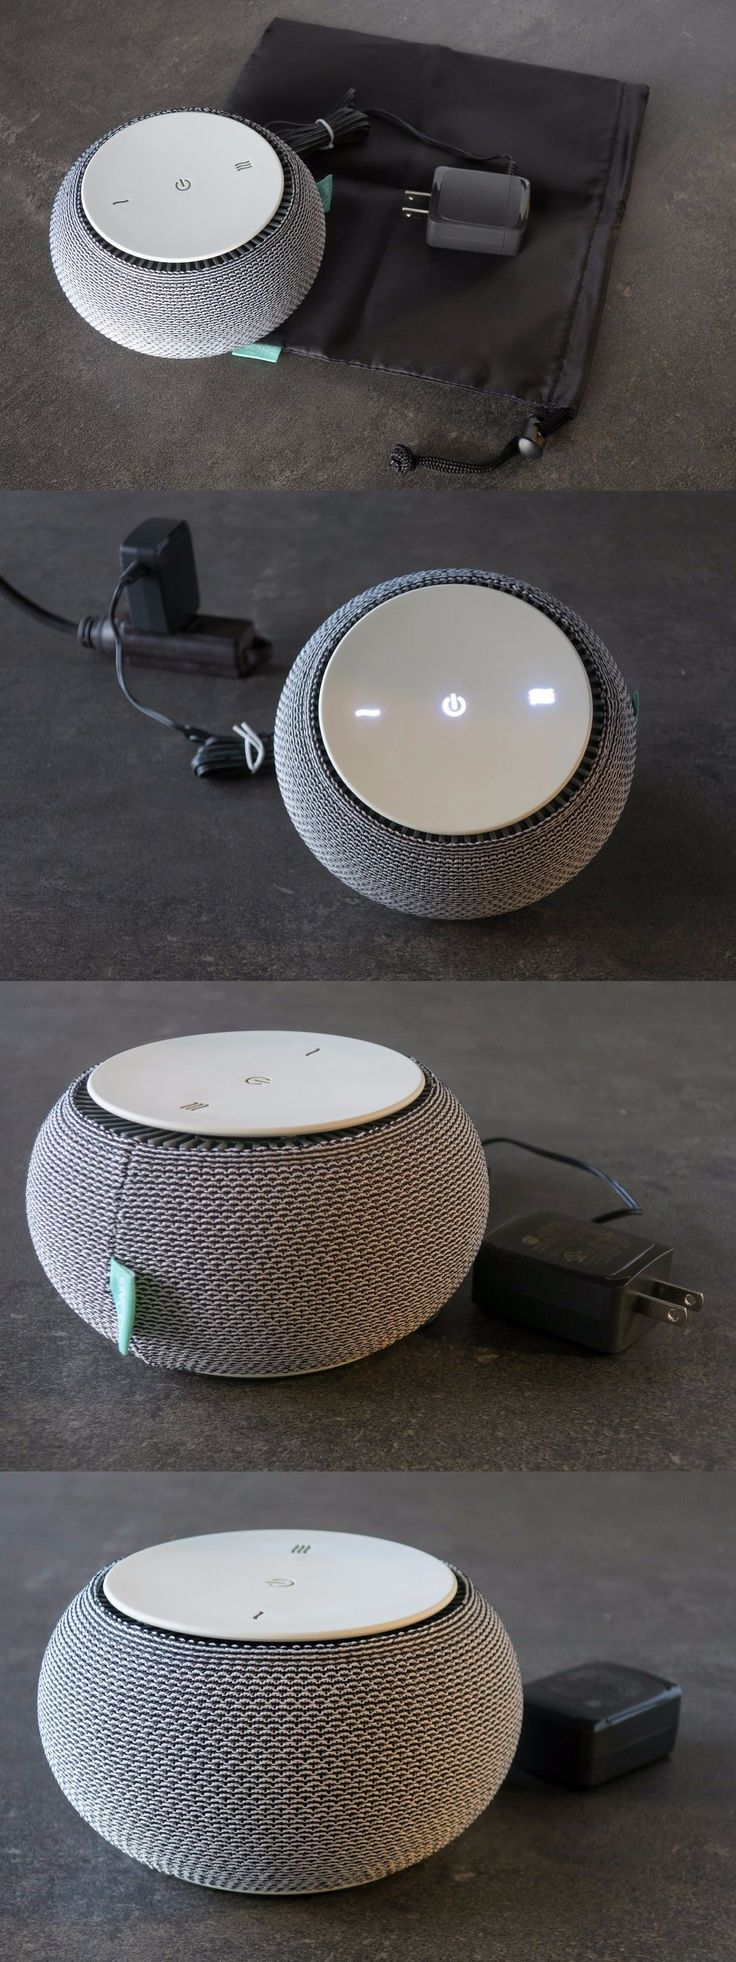 Sound Therapy: Snooz White Noise Machine With Real Fan Inside From Kickstarter Can T Play Music -> BUY IT NOW ONLY: $75 on eBay!